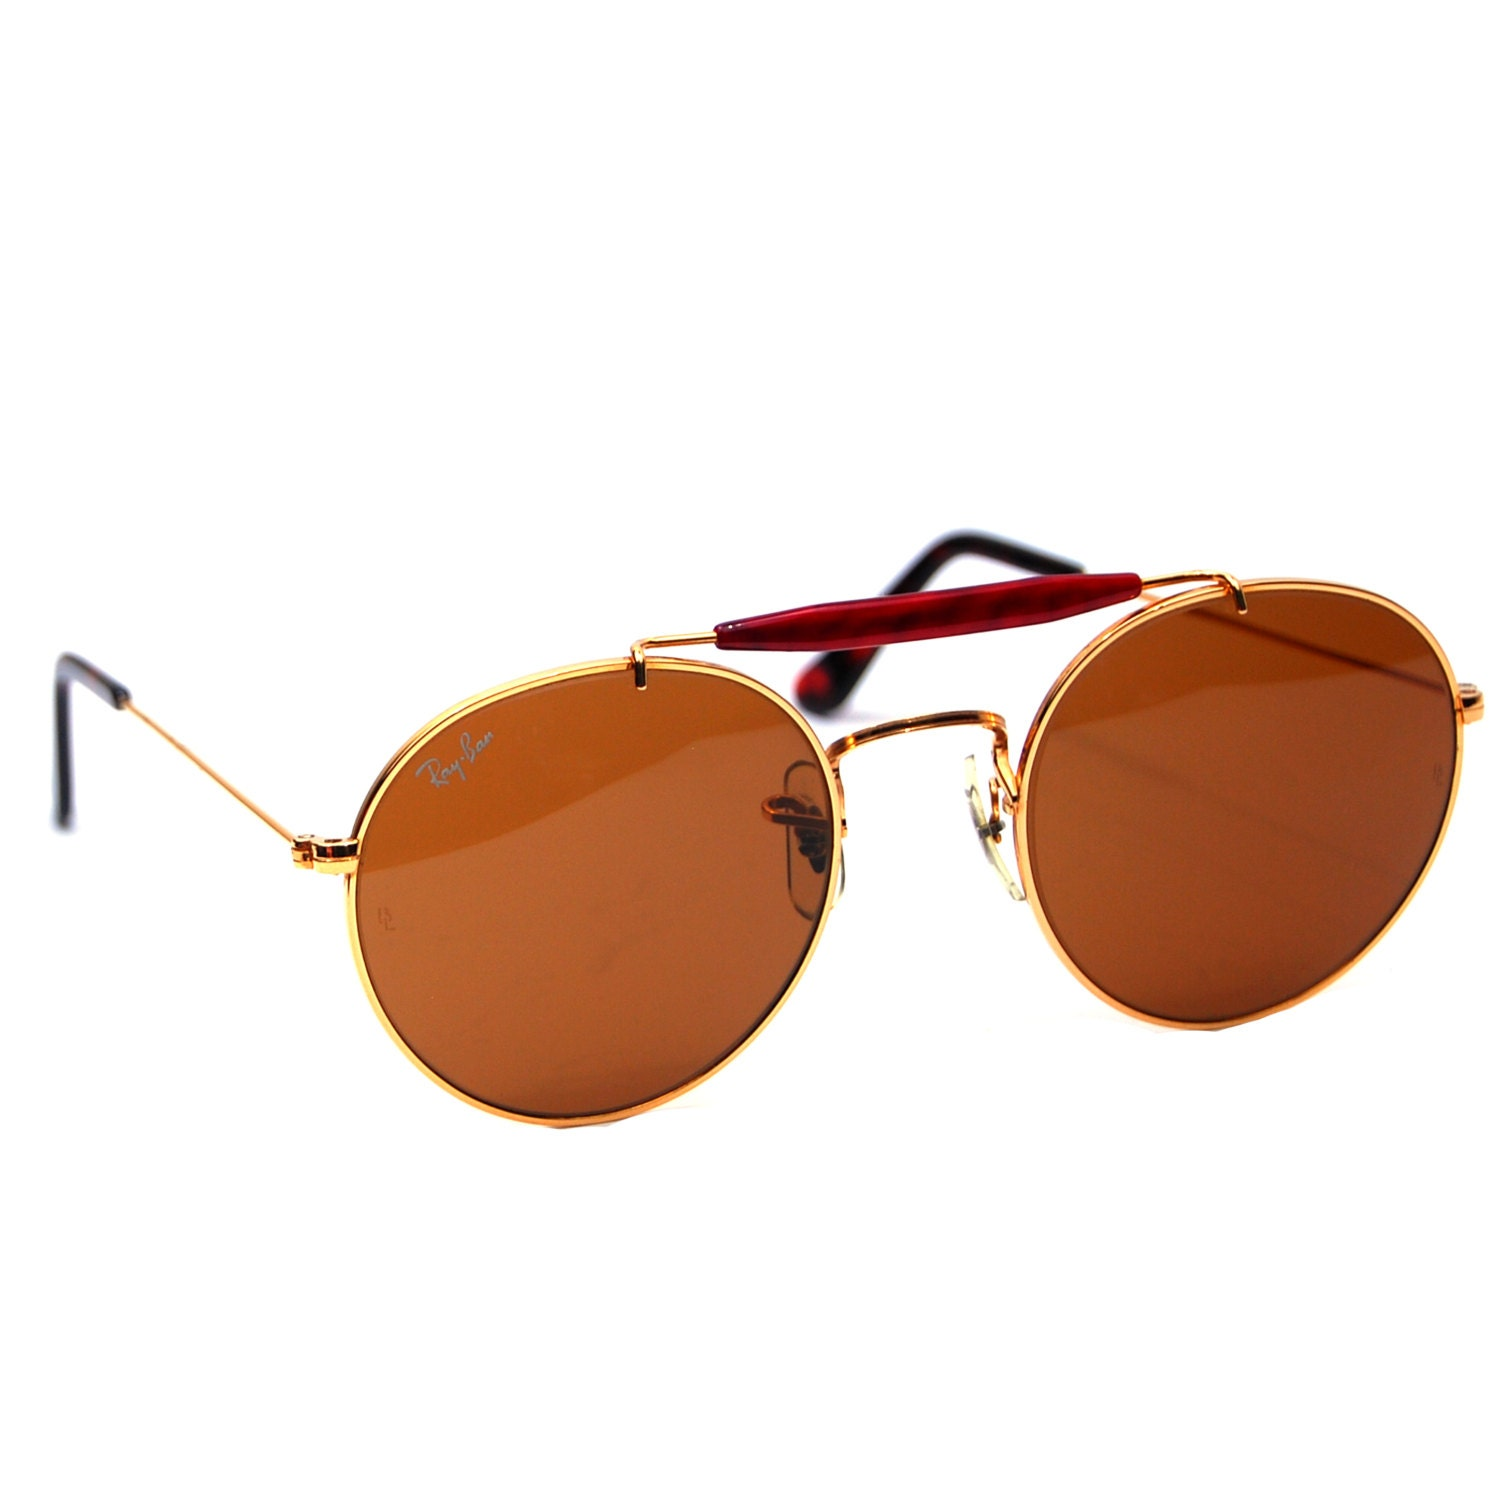 14d79a28452 Vintage Ray Ban Bausch and Lomb Round Steampunk Sunglasses